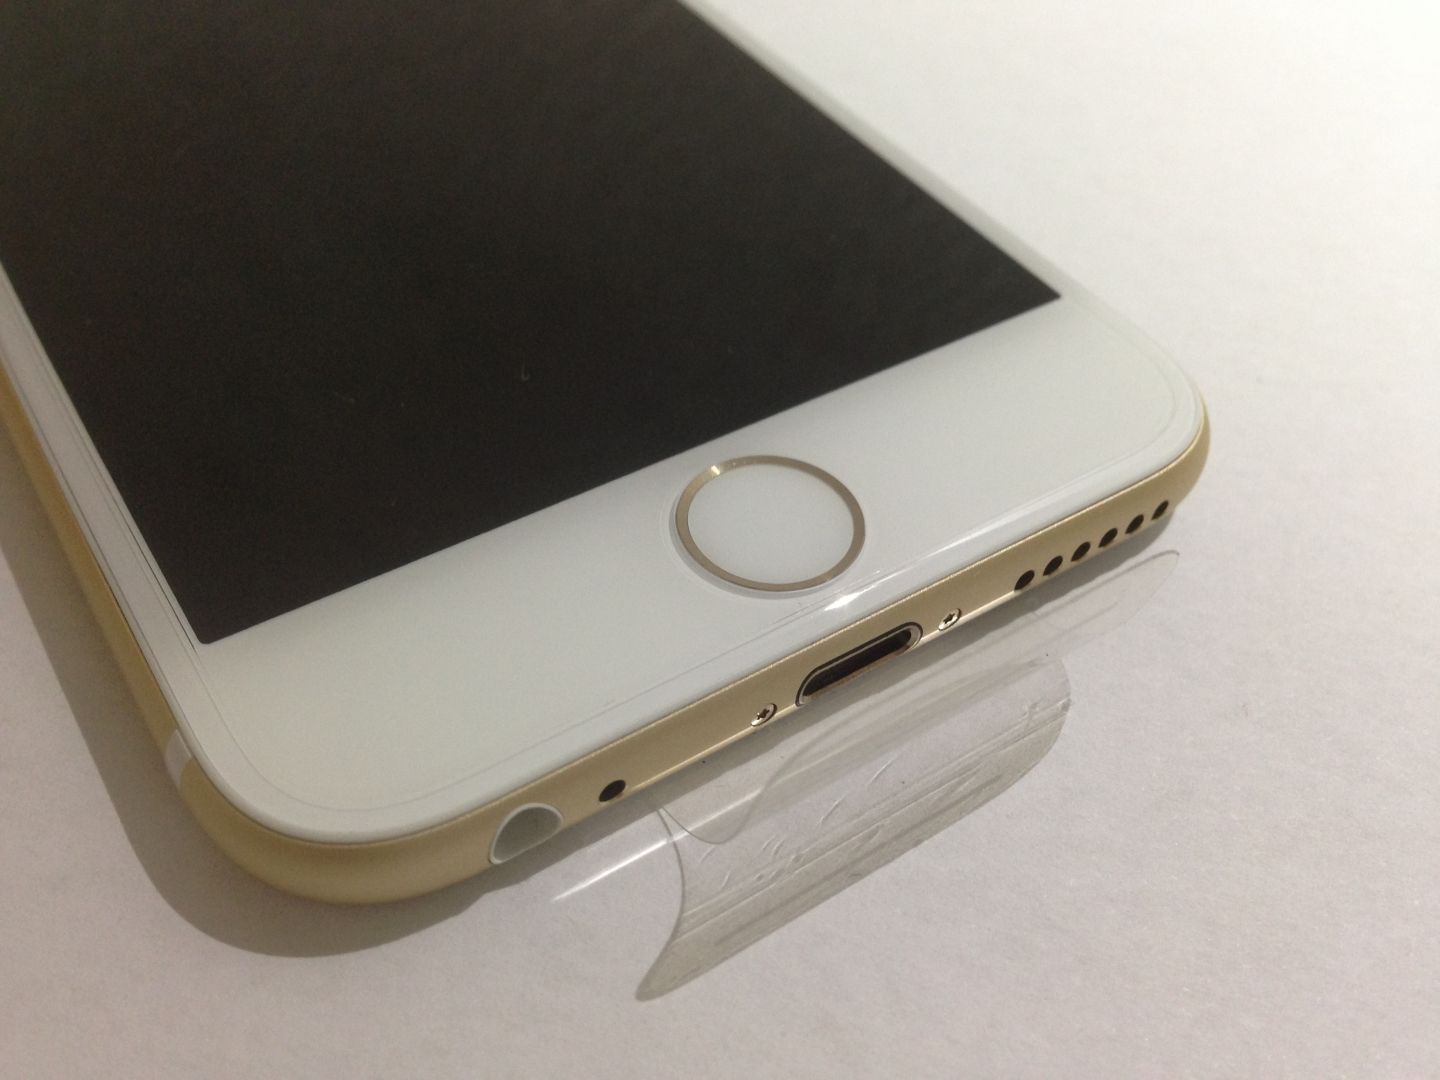 iphone-6_gold_unboxing_8